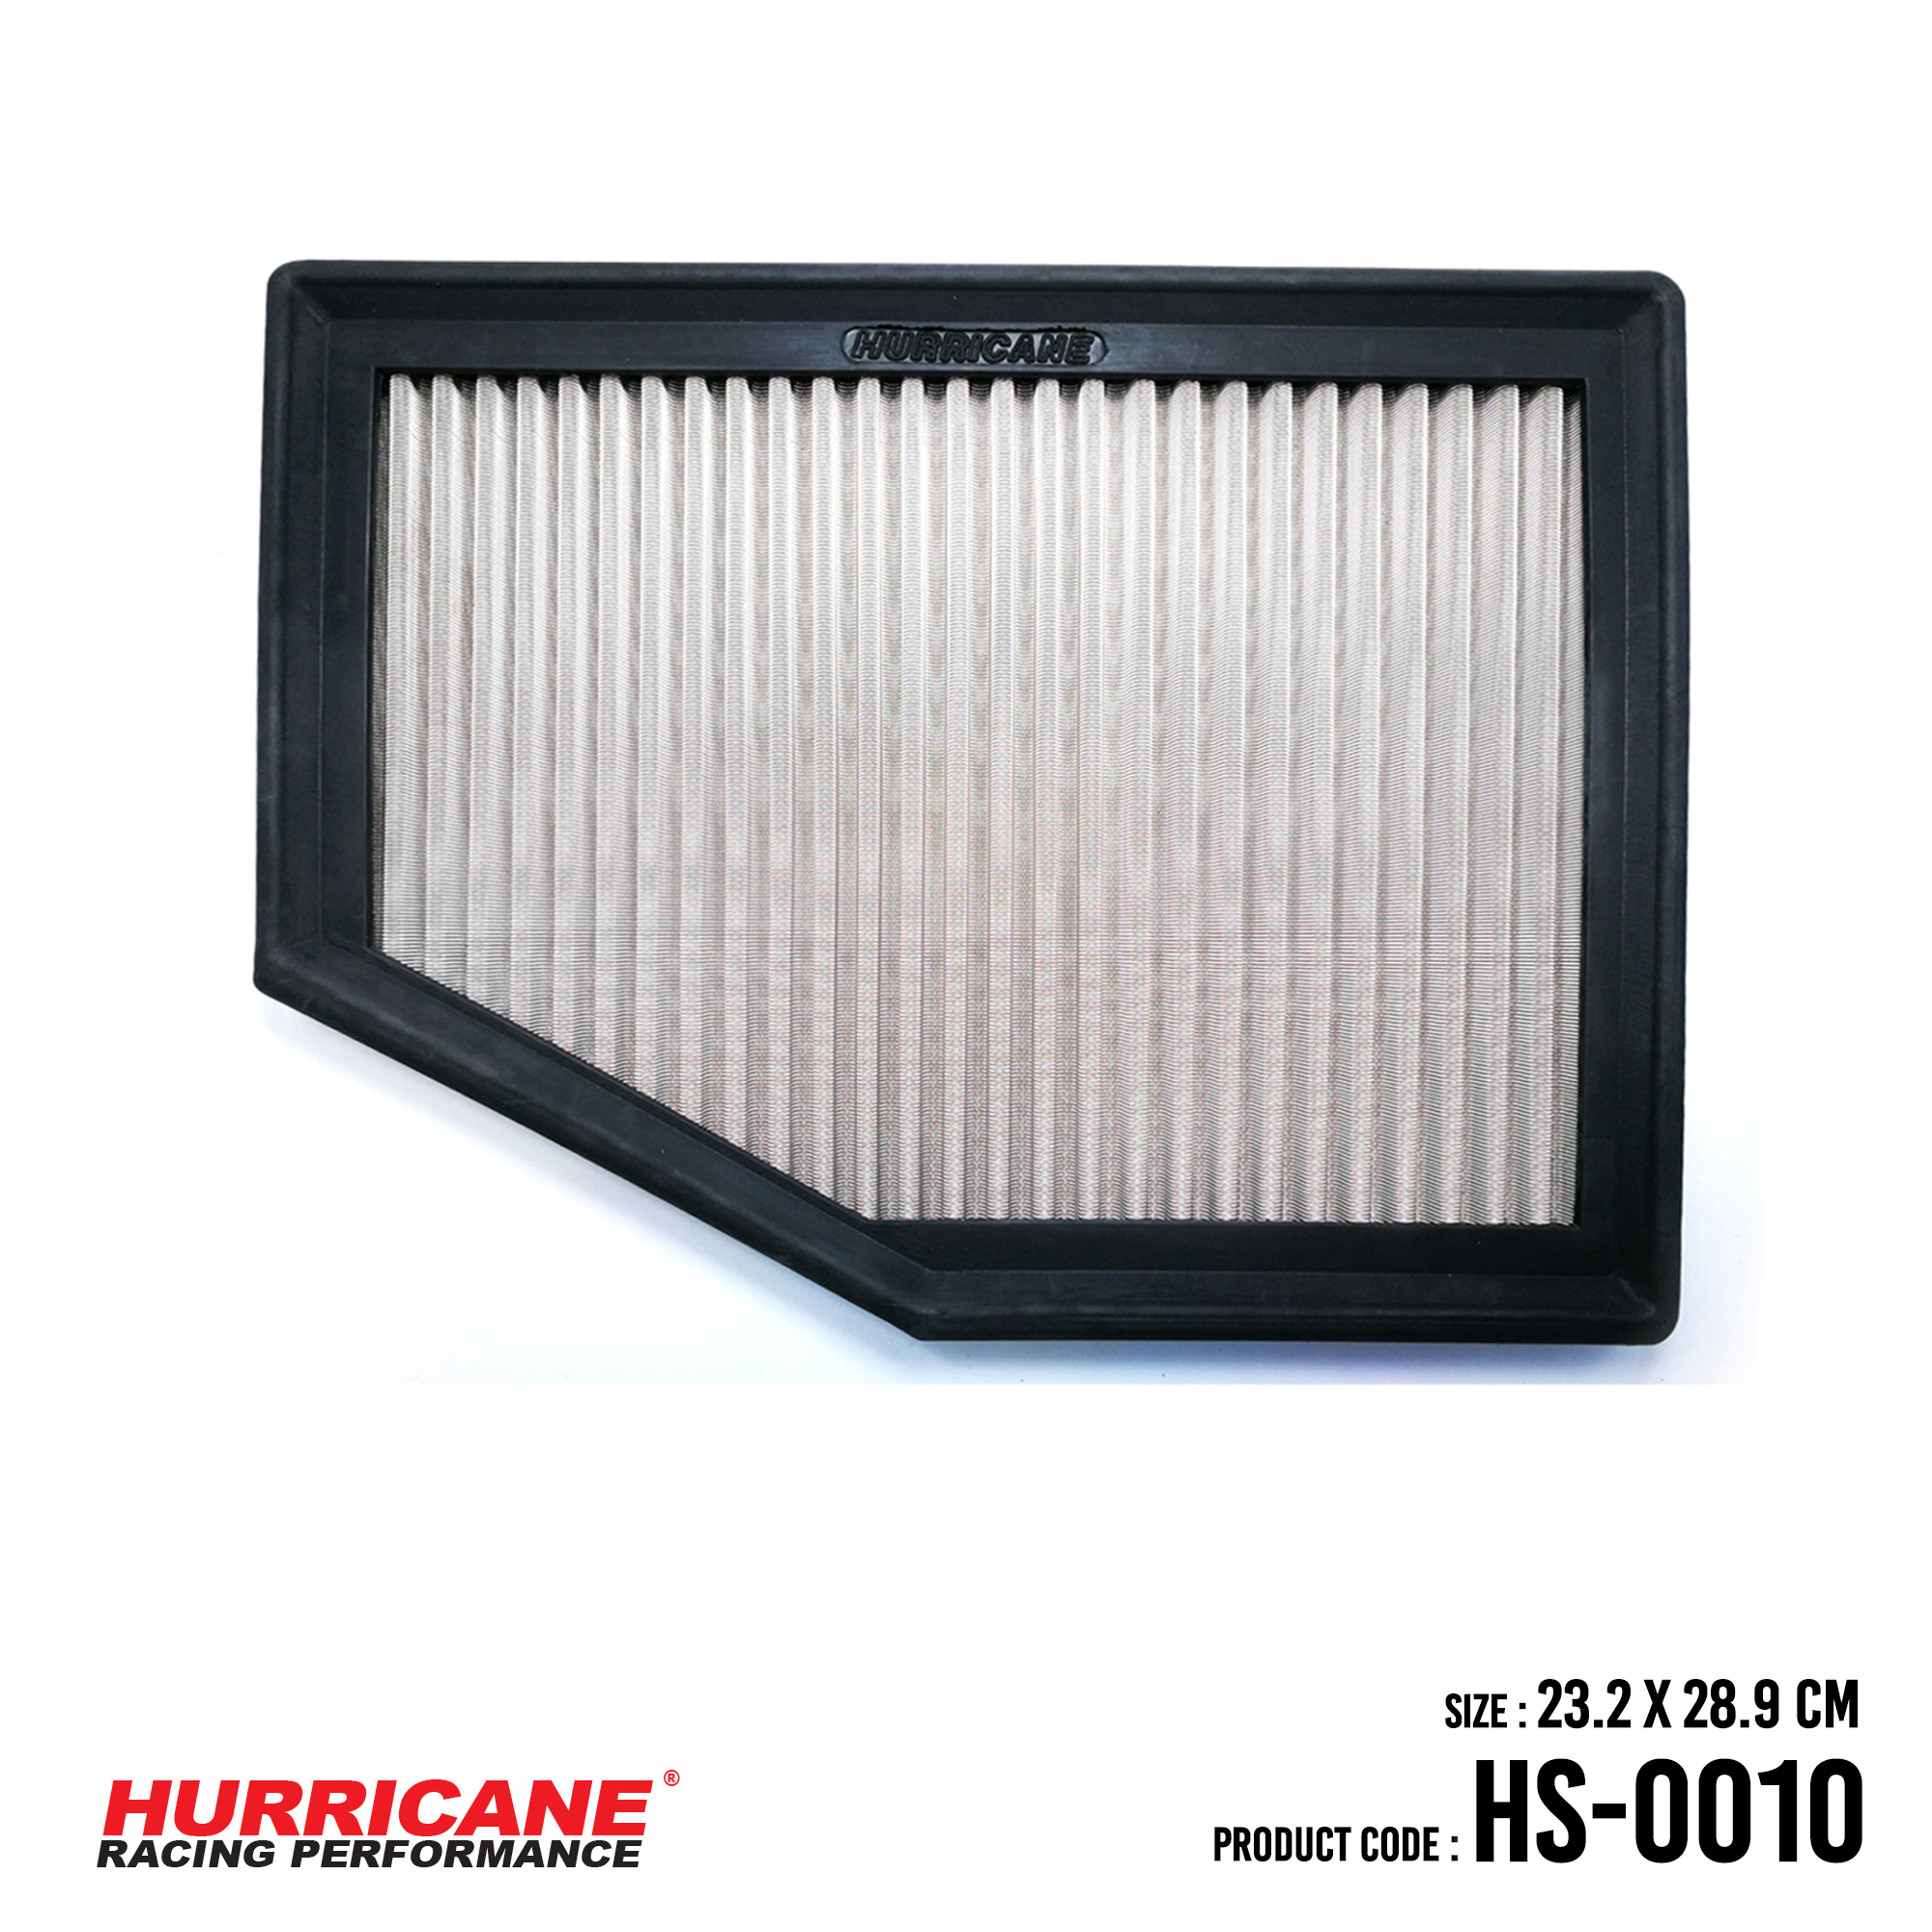 HURRICANE STAINLESS STEEL AIR FILTER FOR HS-0010 BMW